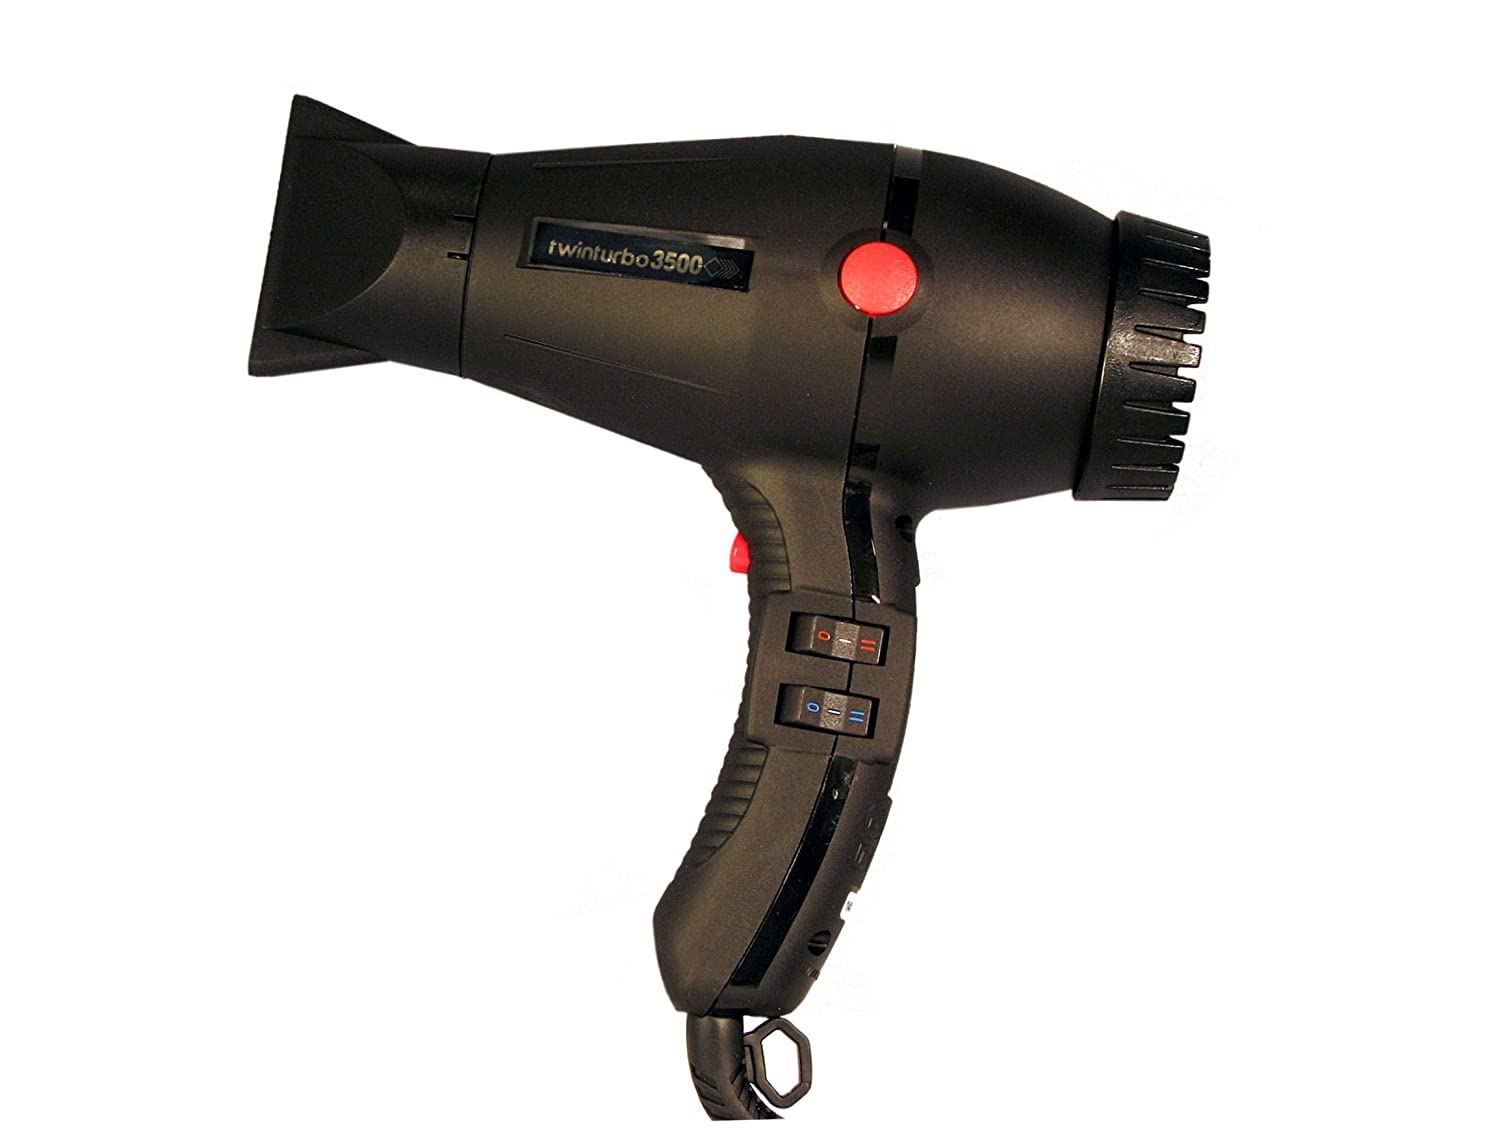 Extracompact Twinturbo 3500 2000 Watt Compact Professional Hair Dryer